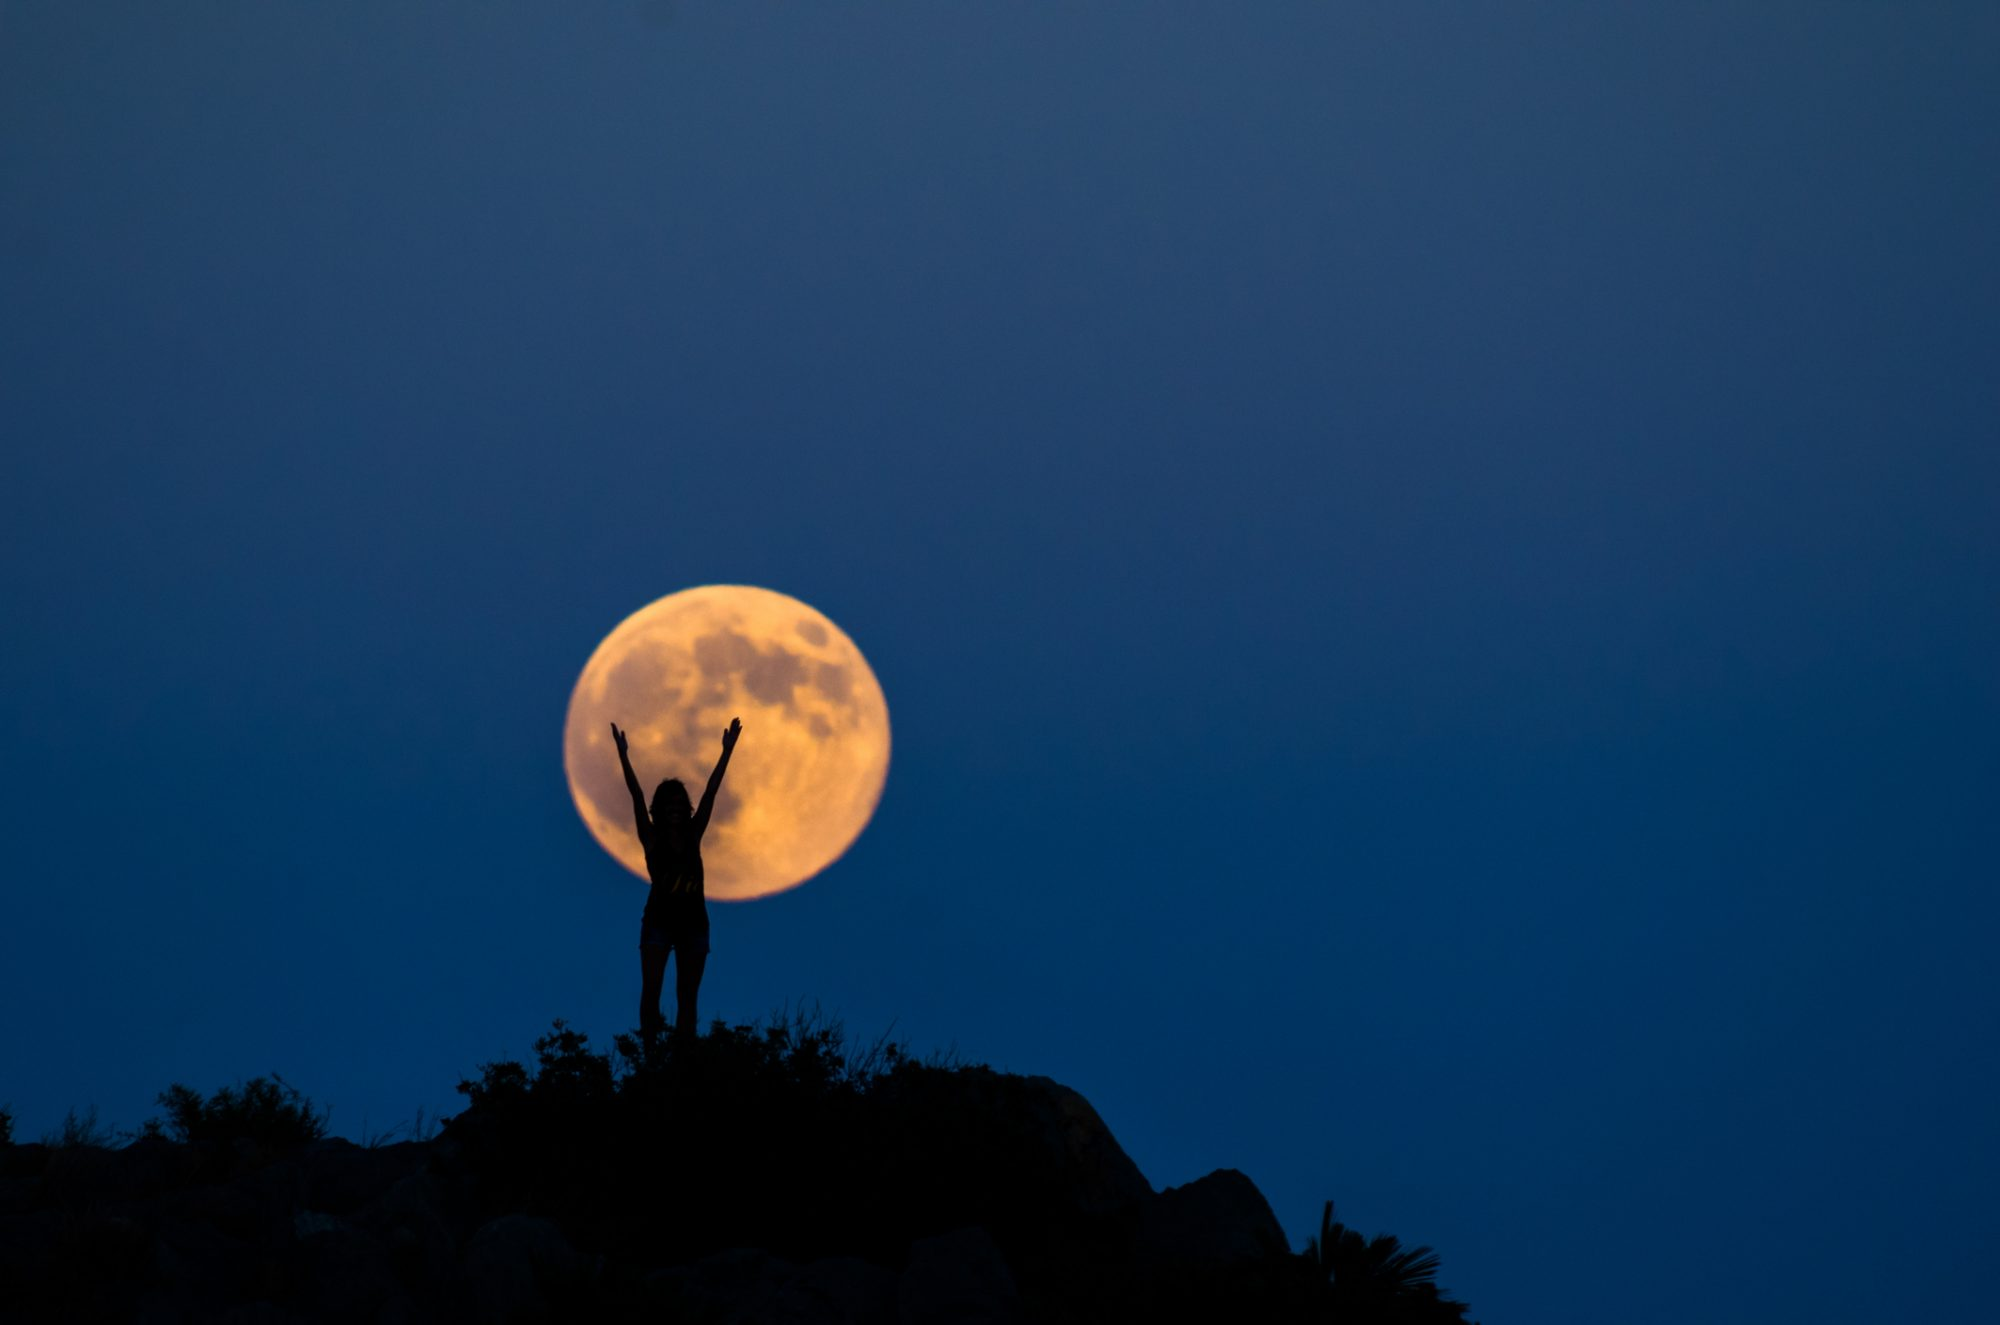 Silhouette of a woman raising her arms up in front of a full moon